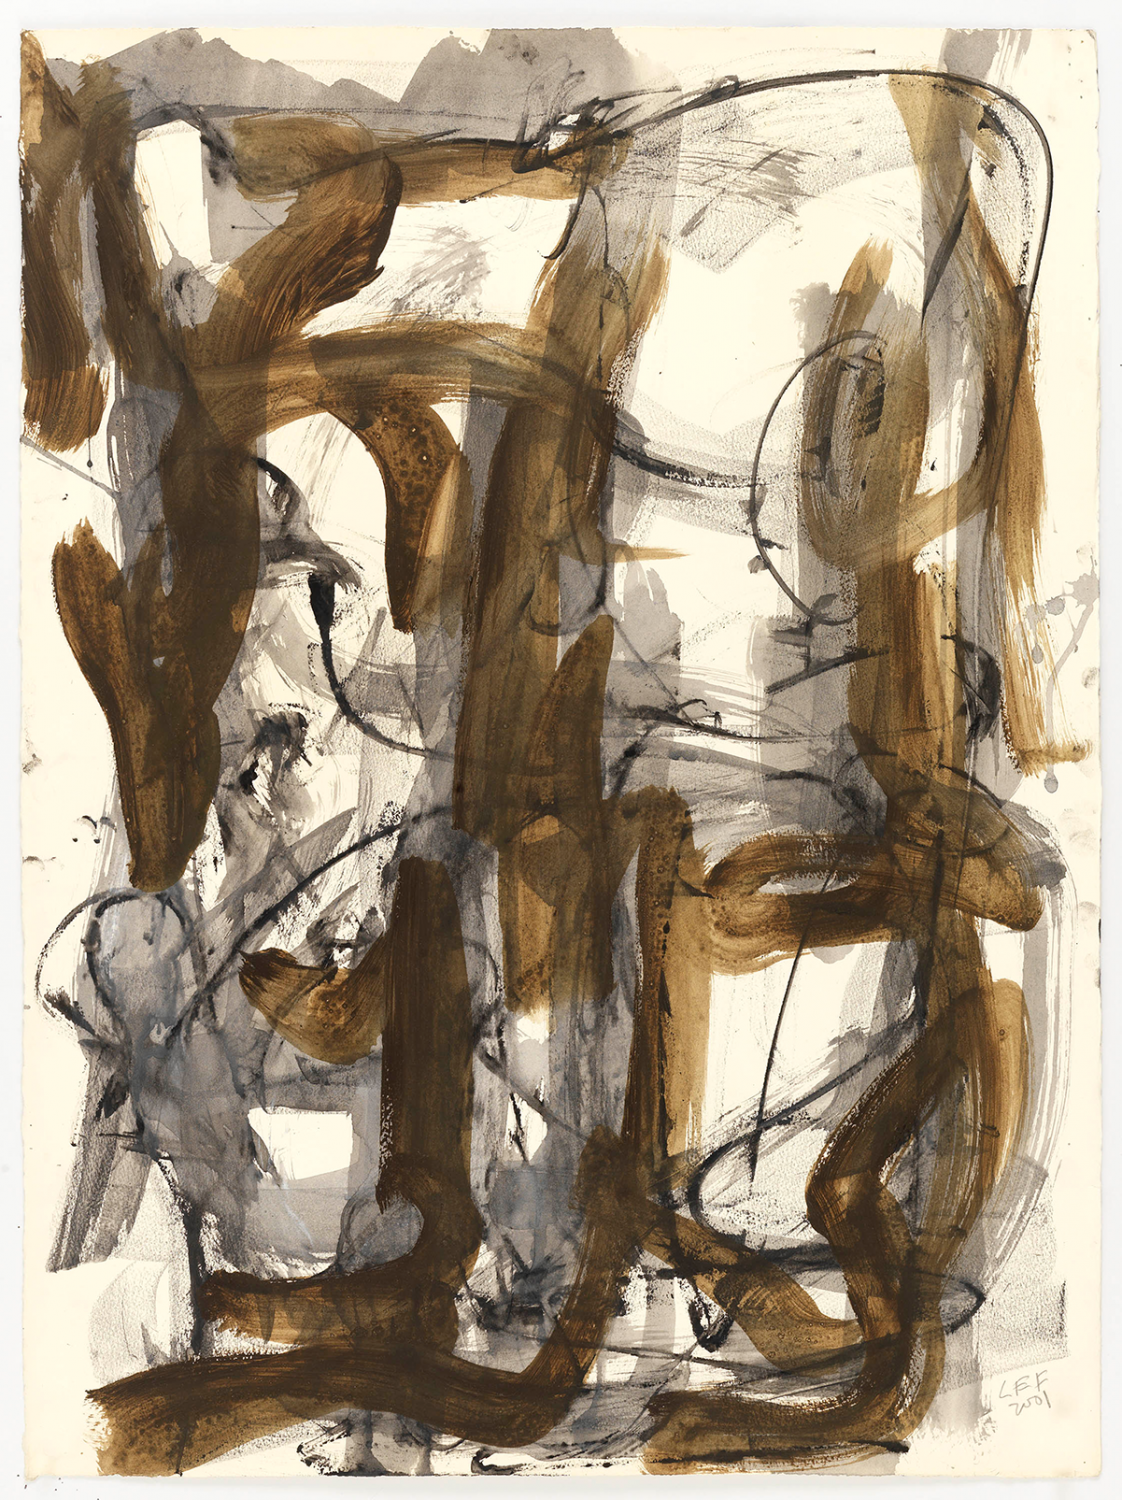 Charcoal and brown watercolor painting that follows the grid, but softly with organic curves. The painting is a full 30 inches tall, so one gets a sense for the physical movement of the arm and hand of the artist in making it. By Louise Fishman